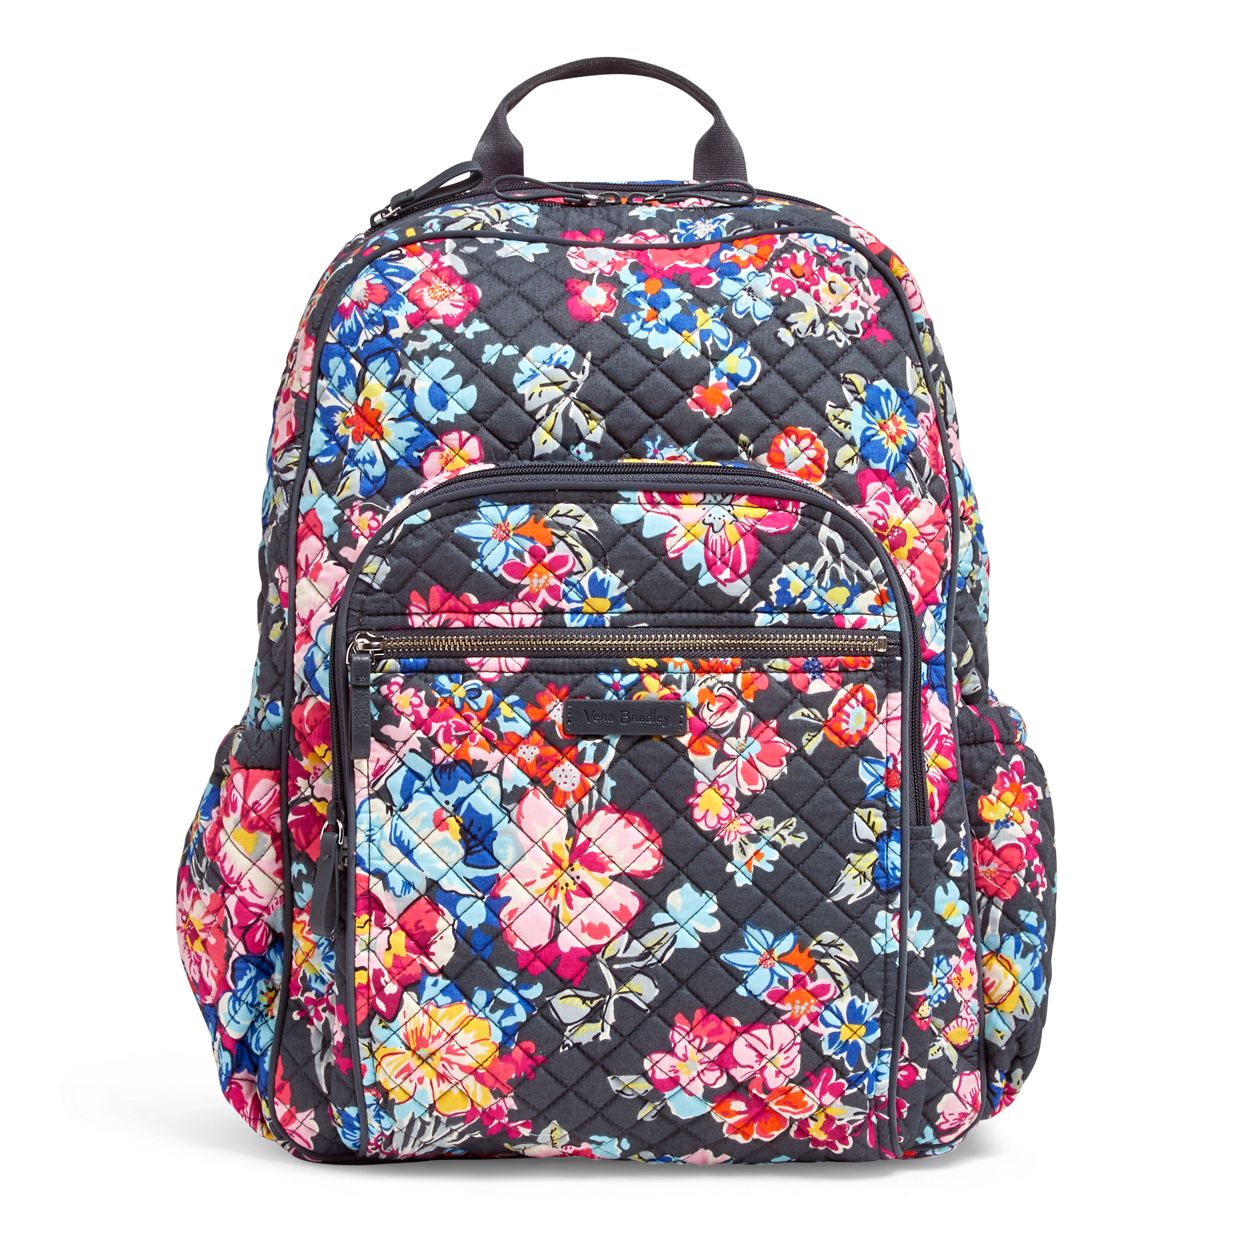 b6c307da1a9 Image of Iconic Campus Backpack in Pretty Posies ...